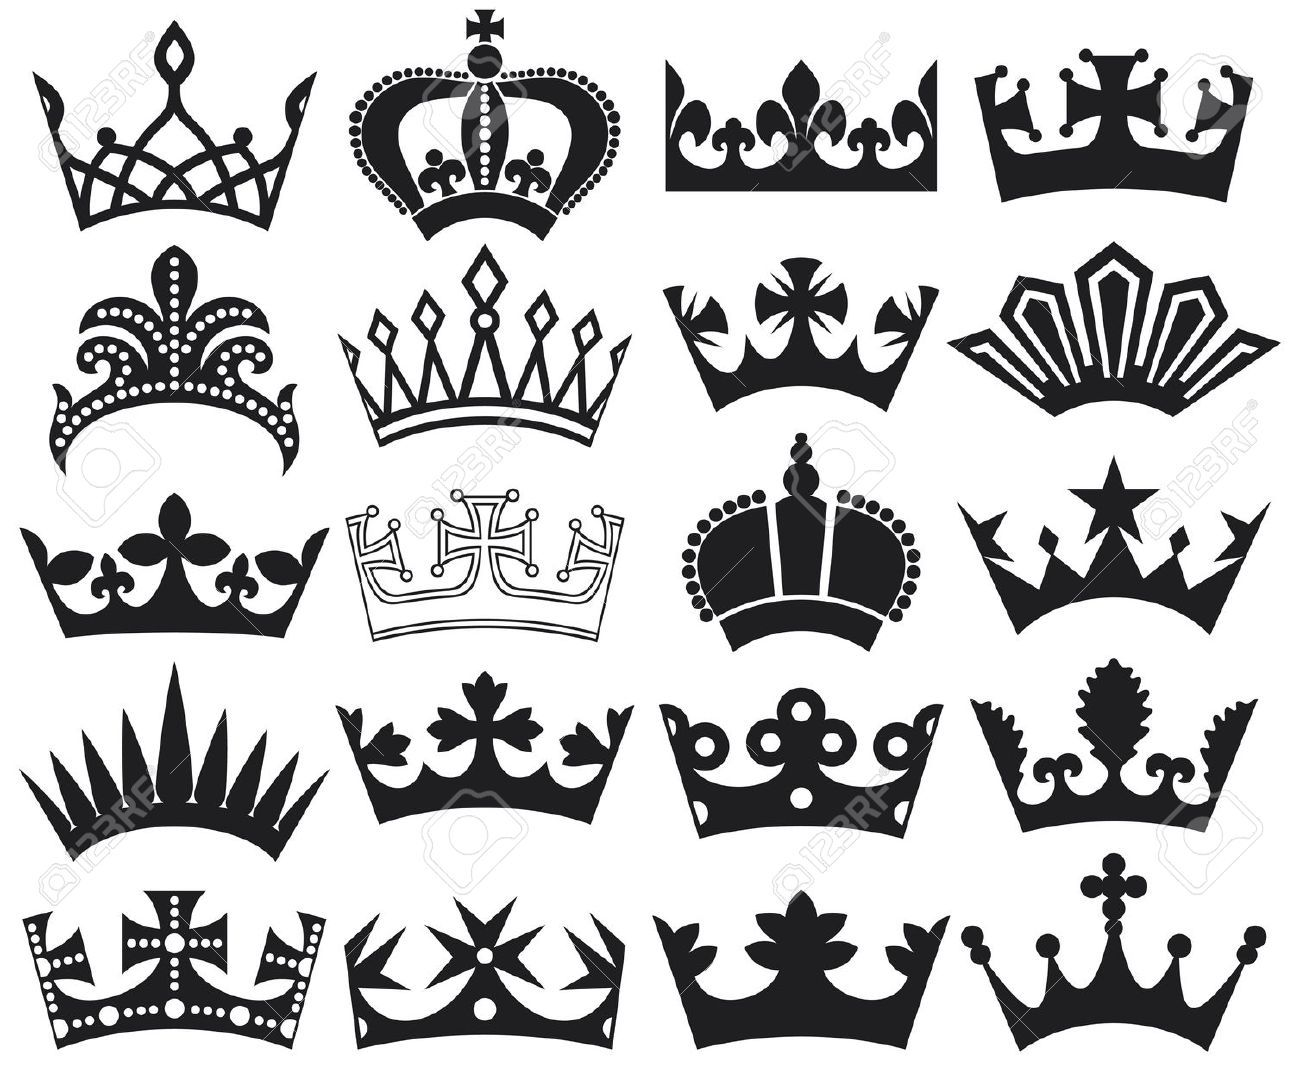 Crown Crest - Google Search